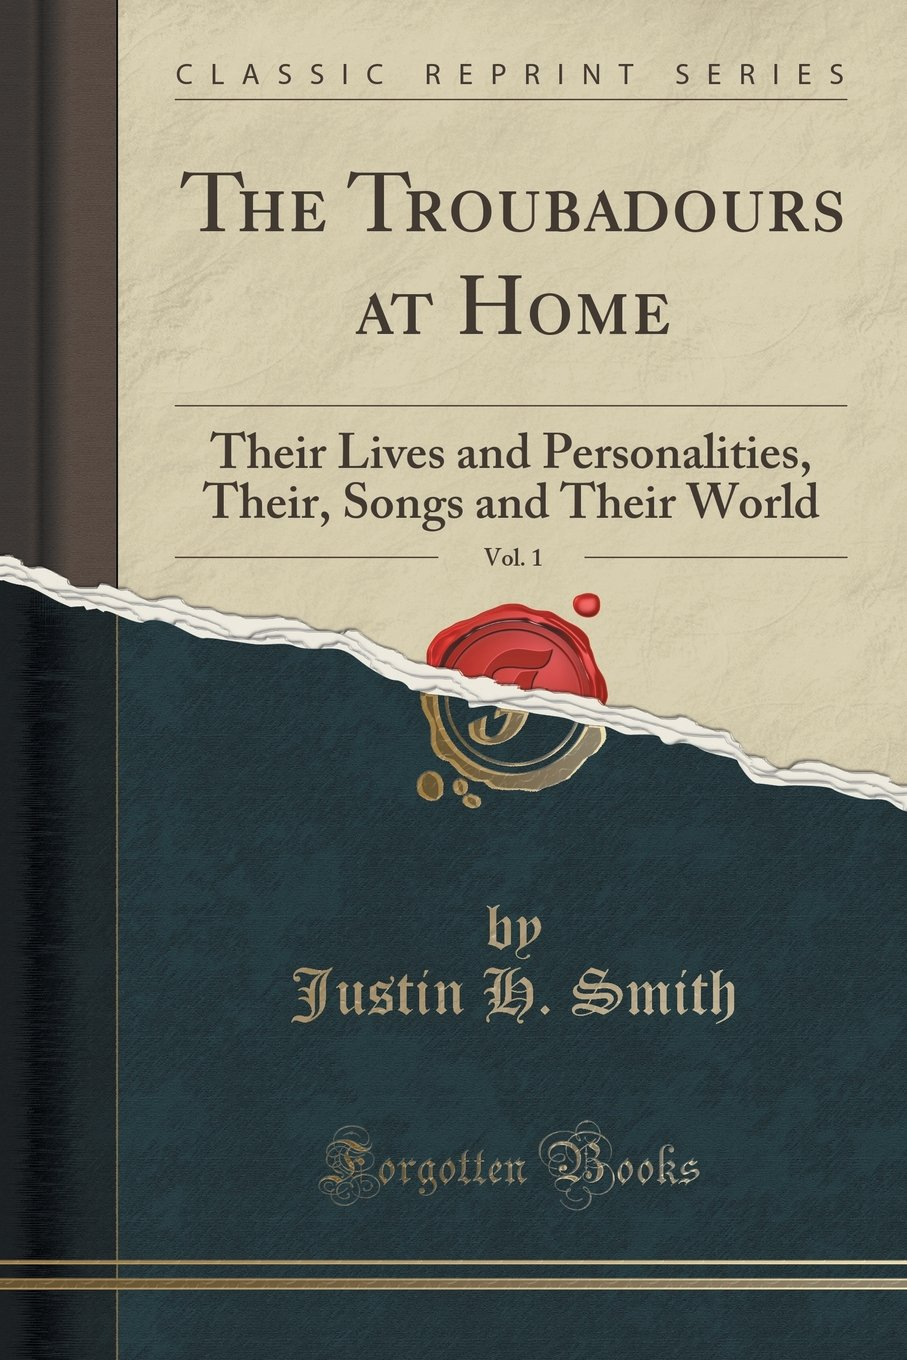 The Troubadours at Home, Vol. 1: Their Lives and Personalities, Their, Songs and Their World (Classic Reprint) ebook